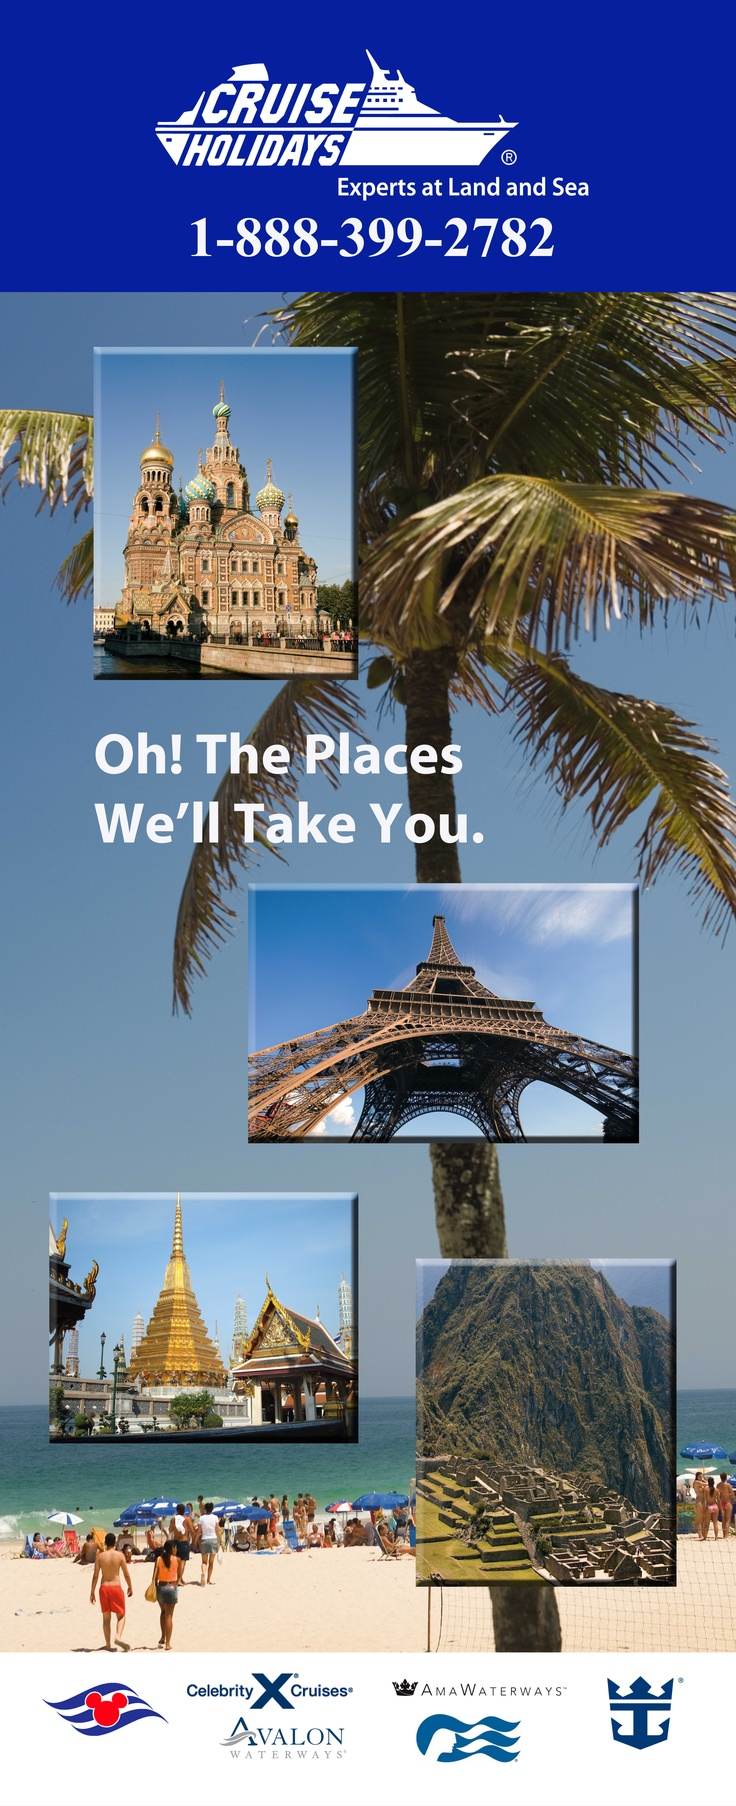 25 Best Ideas About Celebrity Cruises On Pinterest